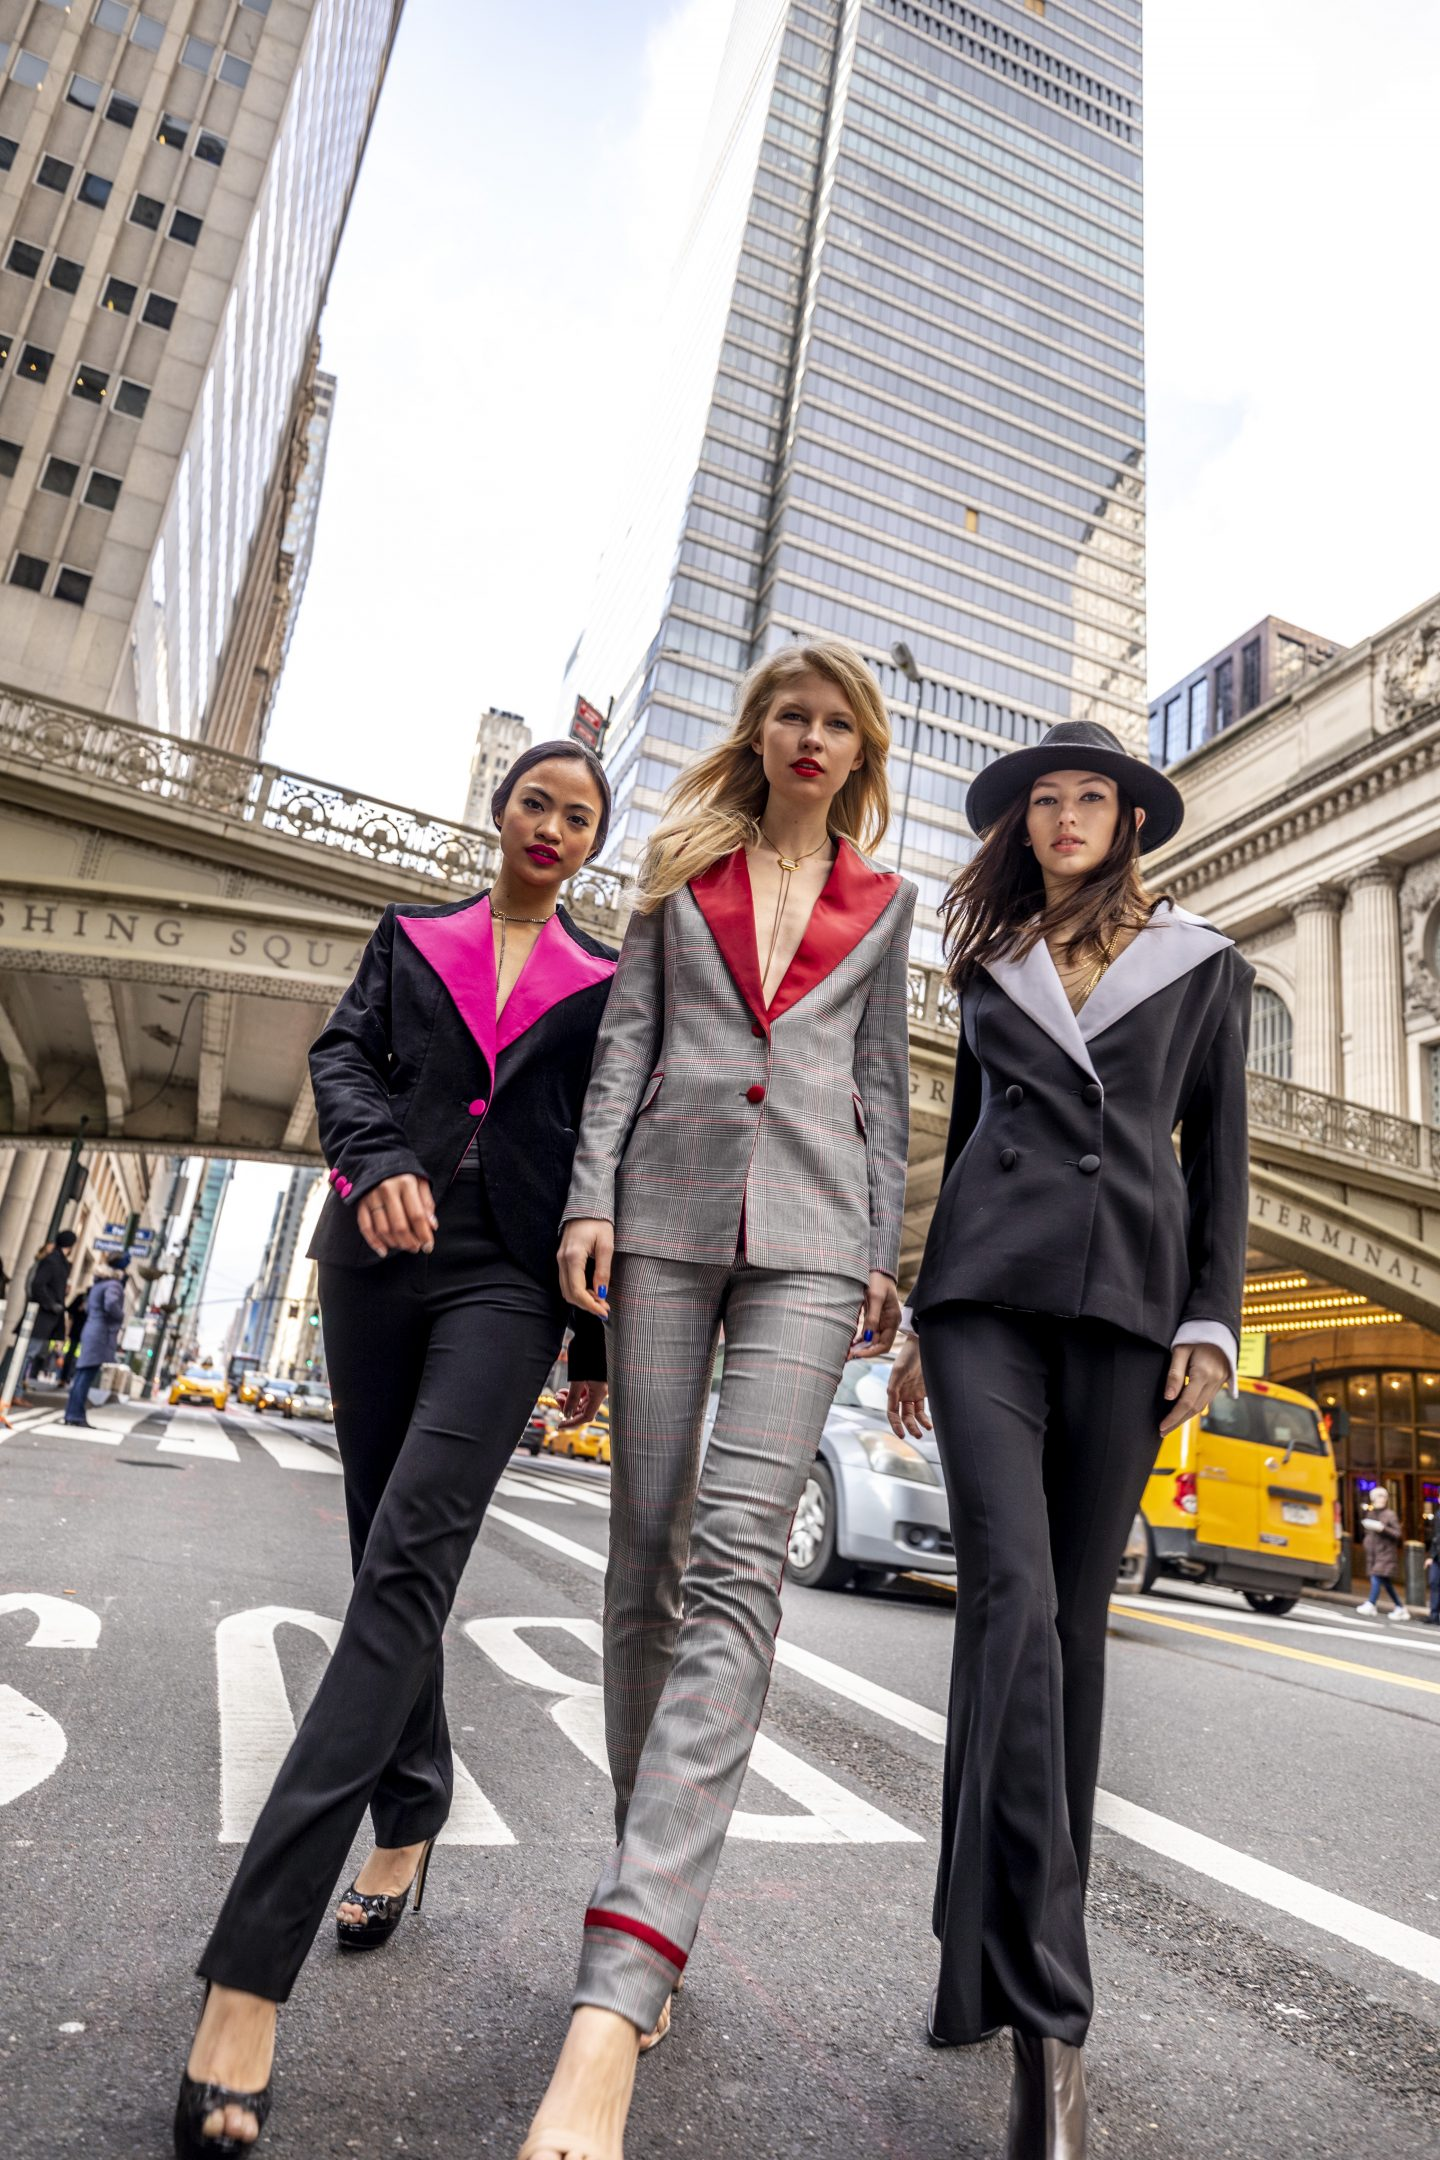 ROSSI TUXEDO PRESENTA SU NUEVA COLECCION EN NEW YORK FASHION WEEK